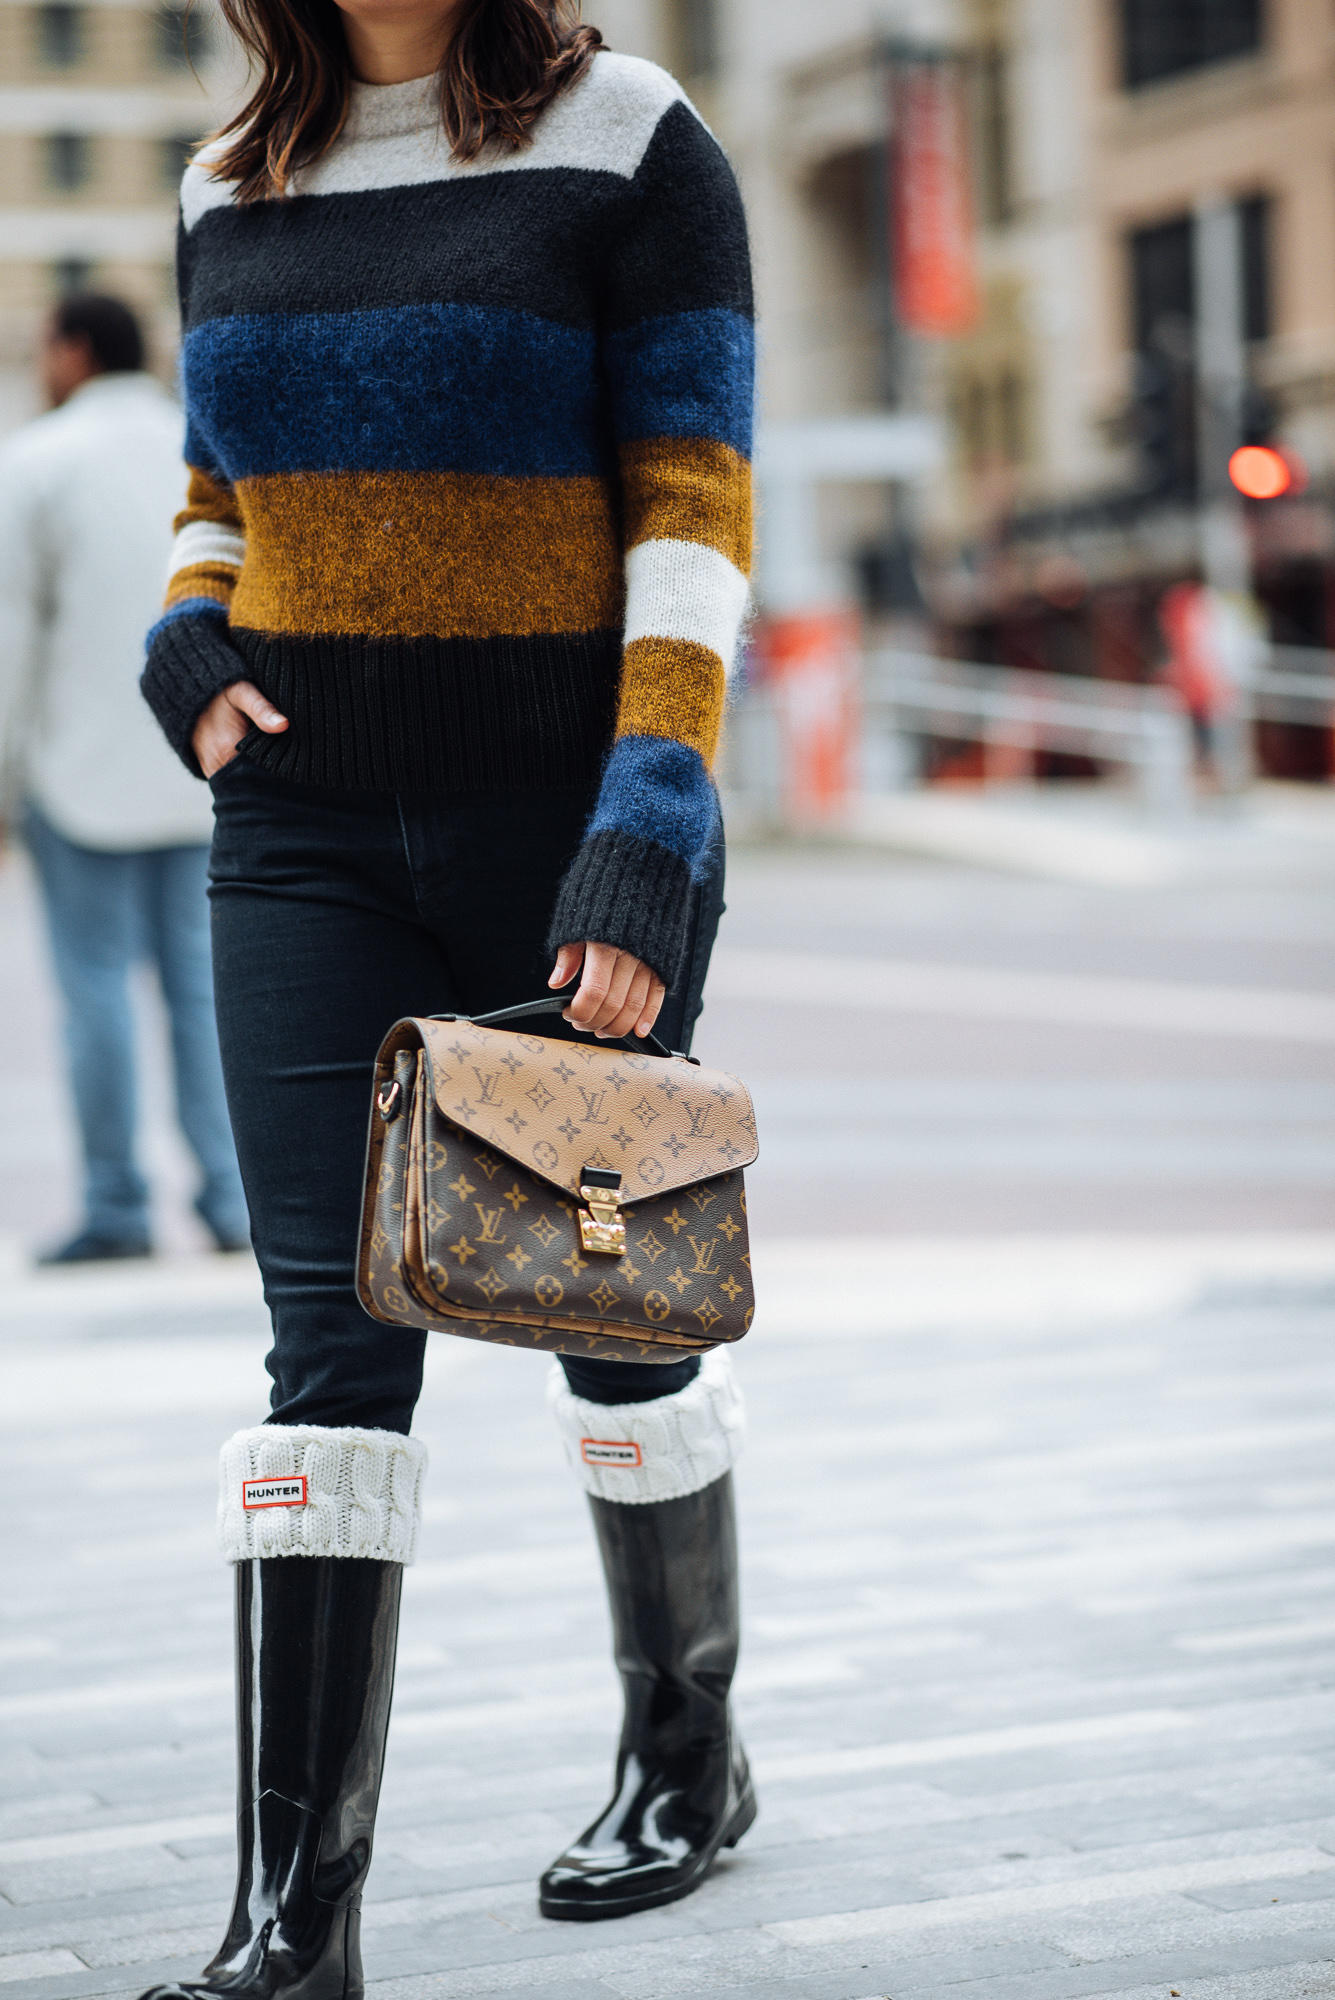 Image of Rag and Bone Sweater | The Cultured Fashionista | Louis Vuitton Pouchette Metis